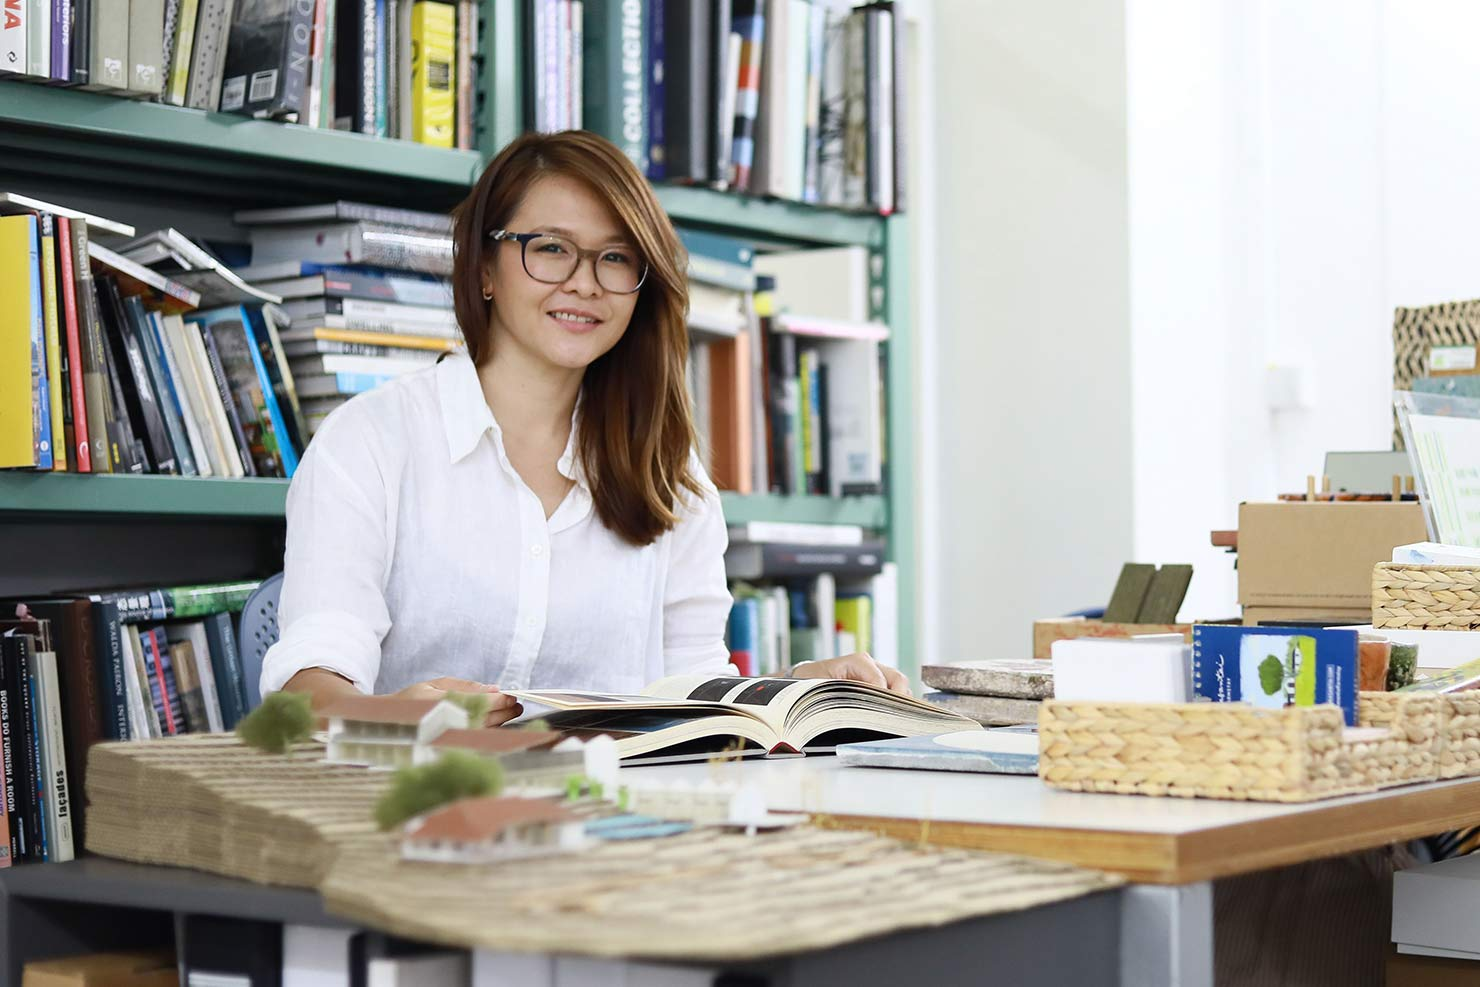 Woman in white shirt and glasses reading from a book in a workspace